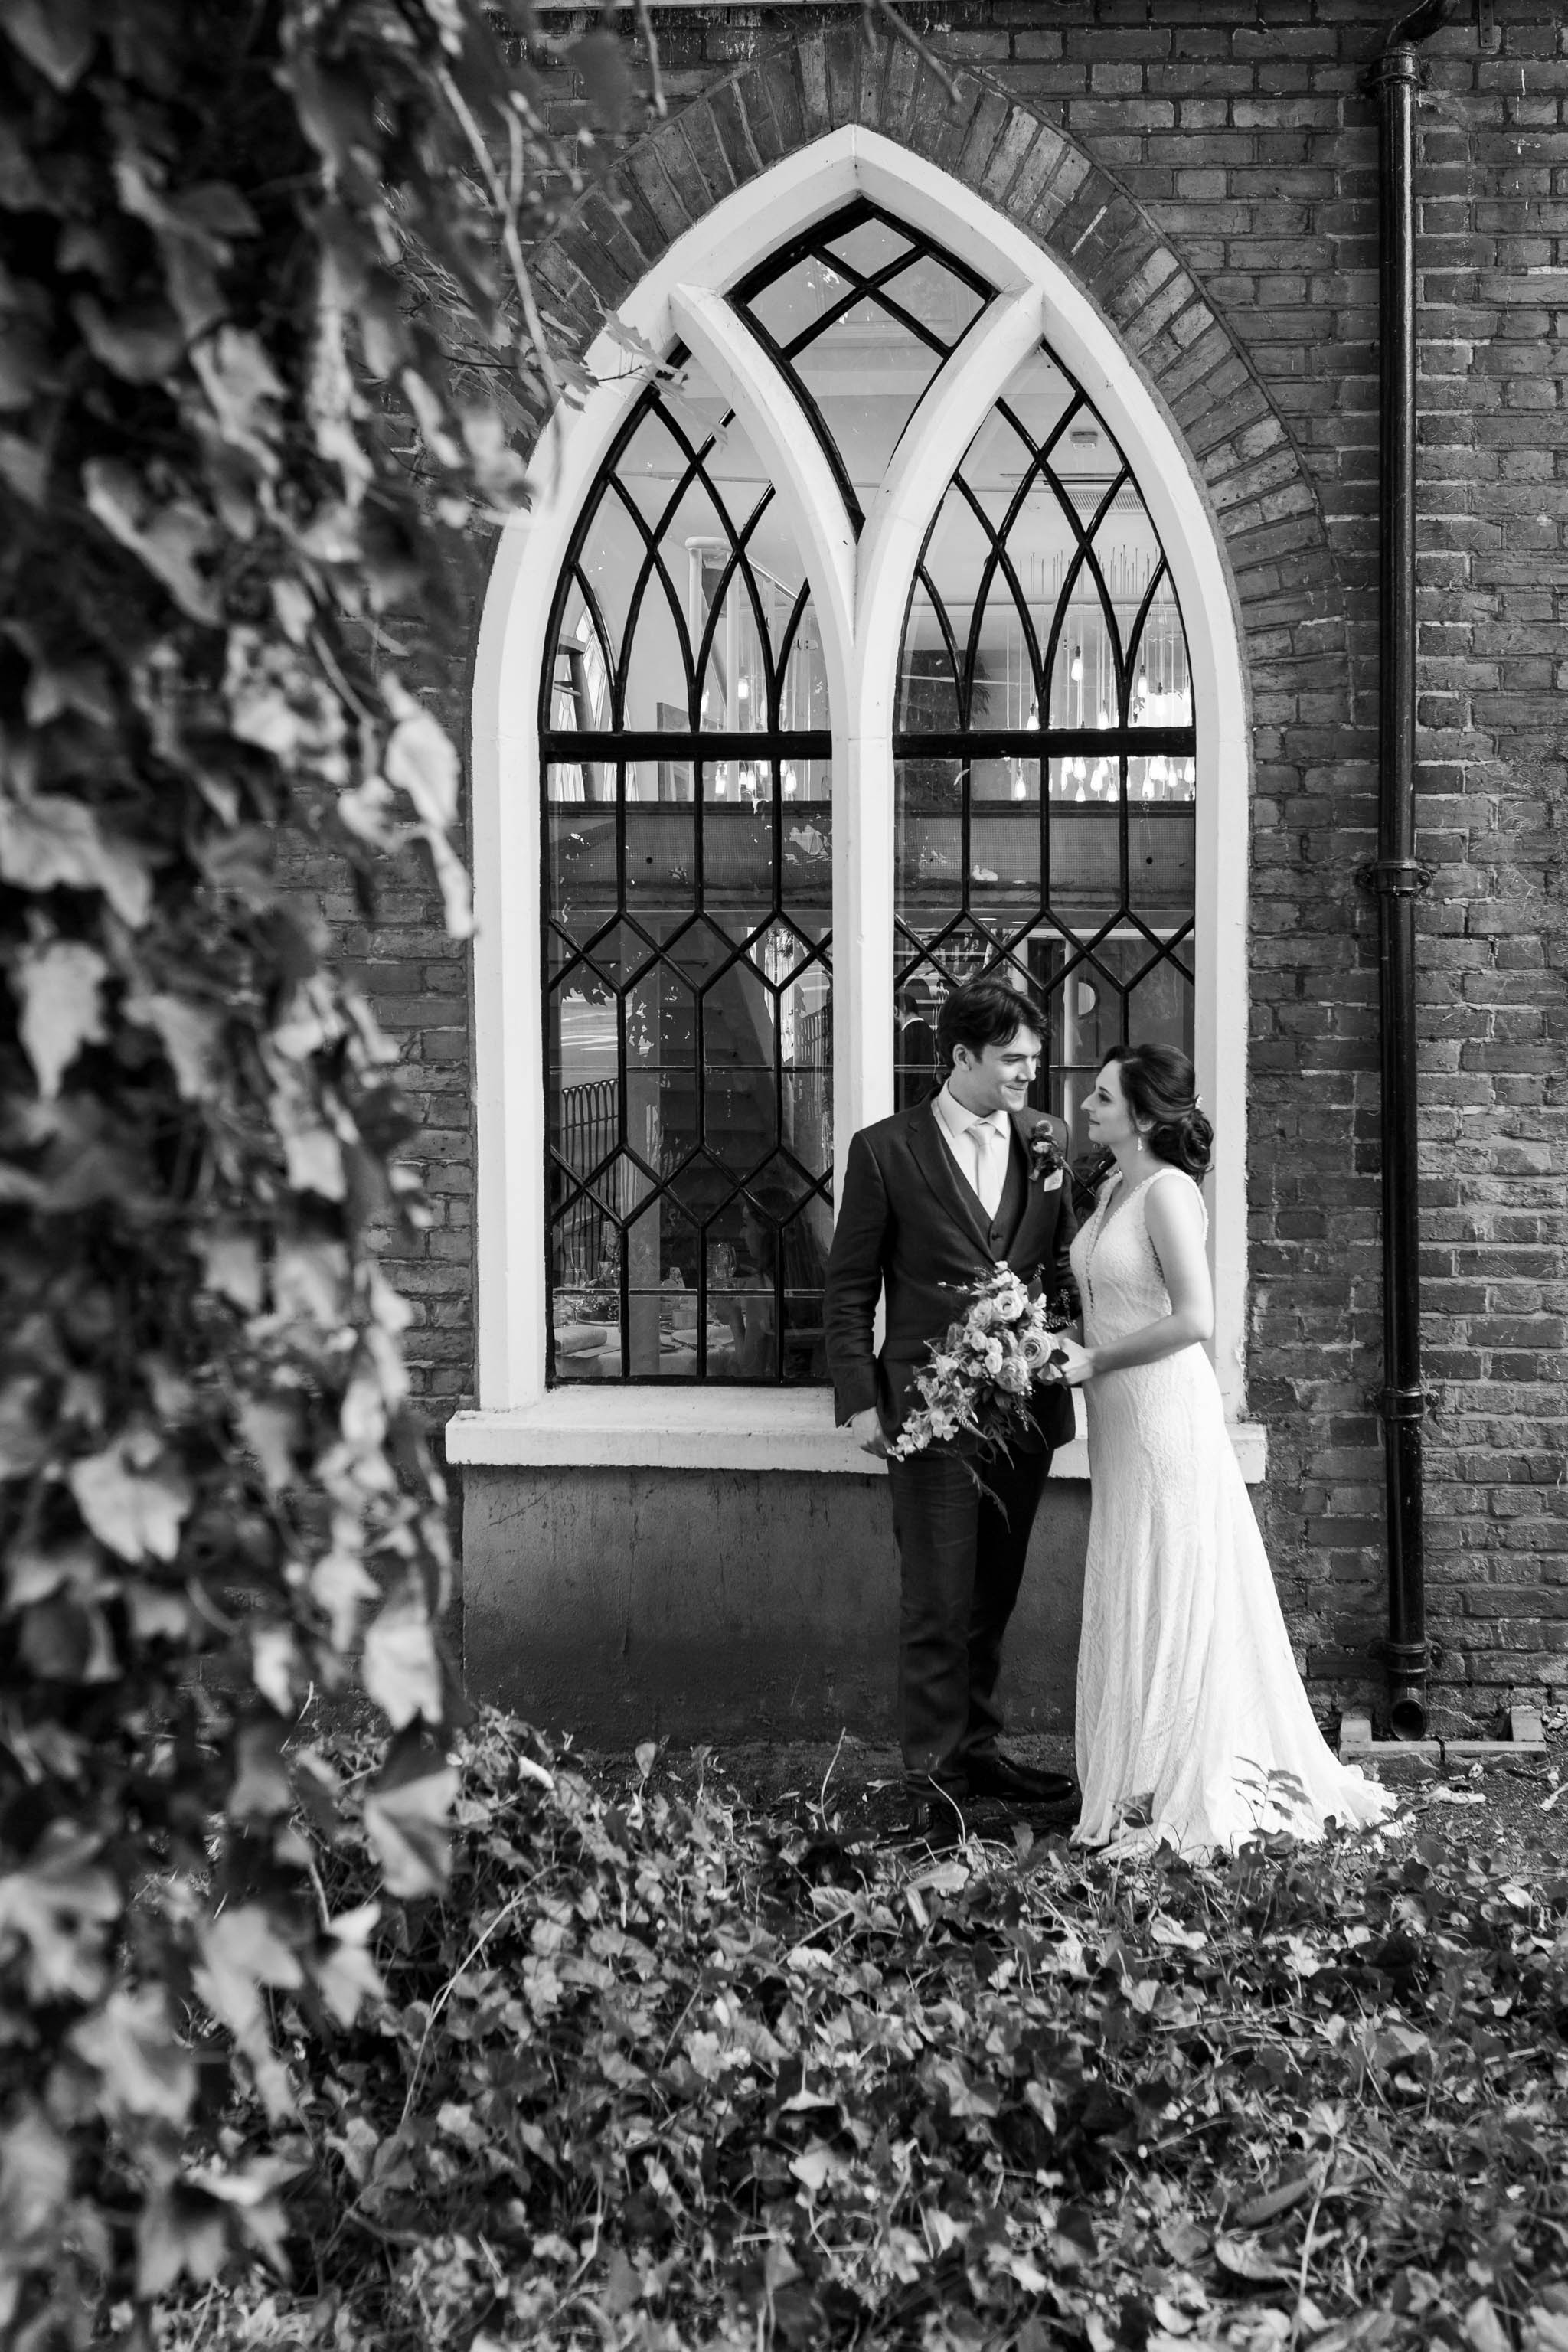 bride and groom outside church style window